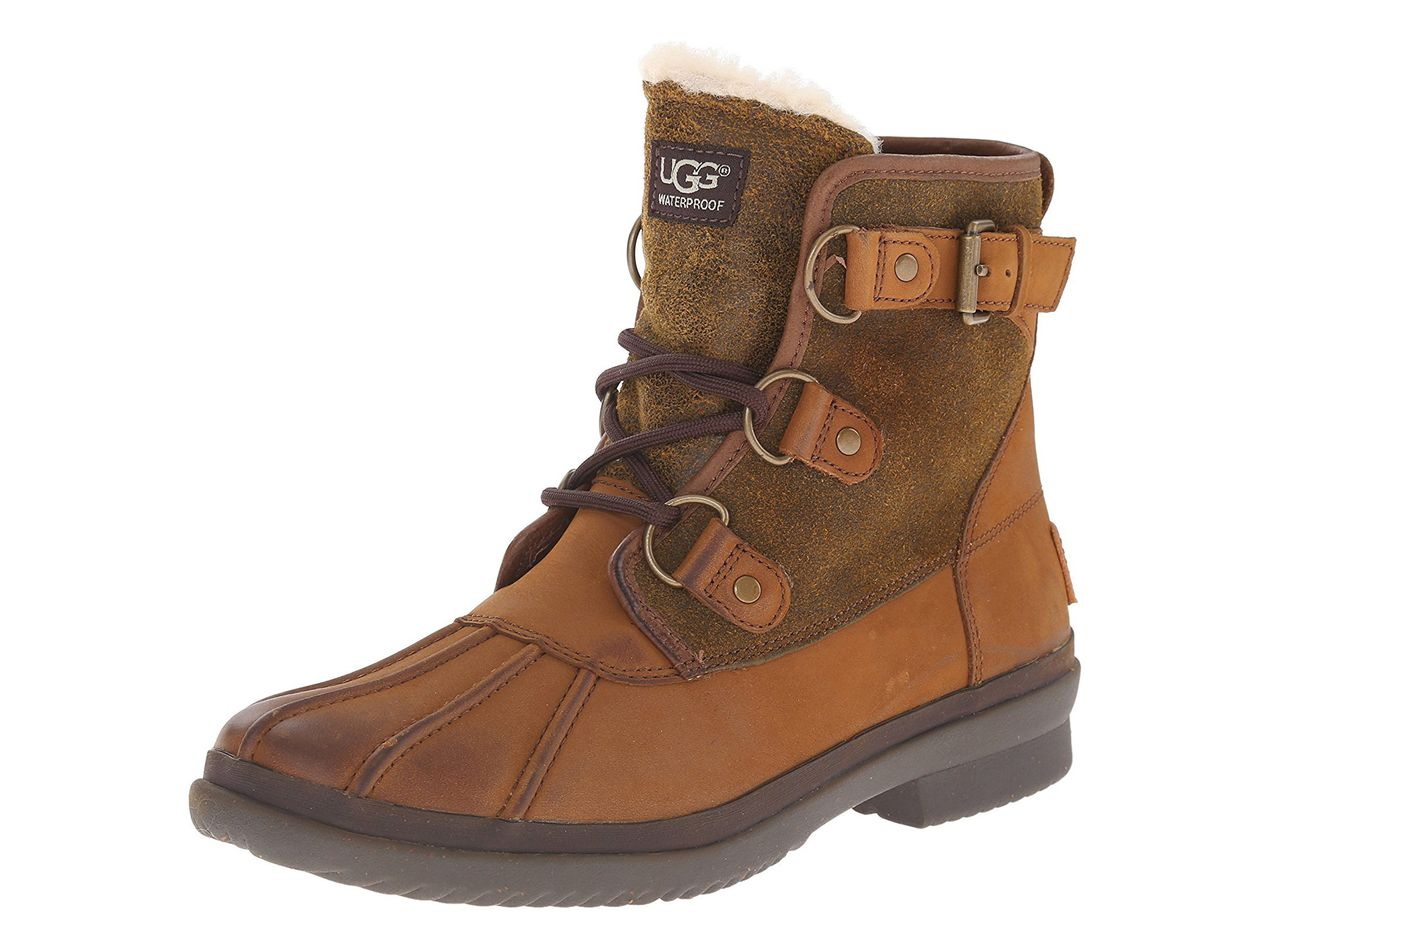 1694223d7d3 UGG Women s Cecile Winter Boot at Amazon